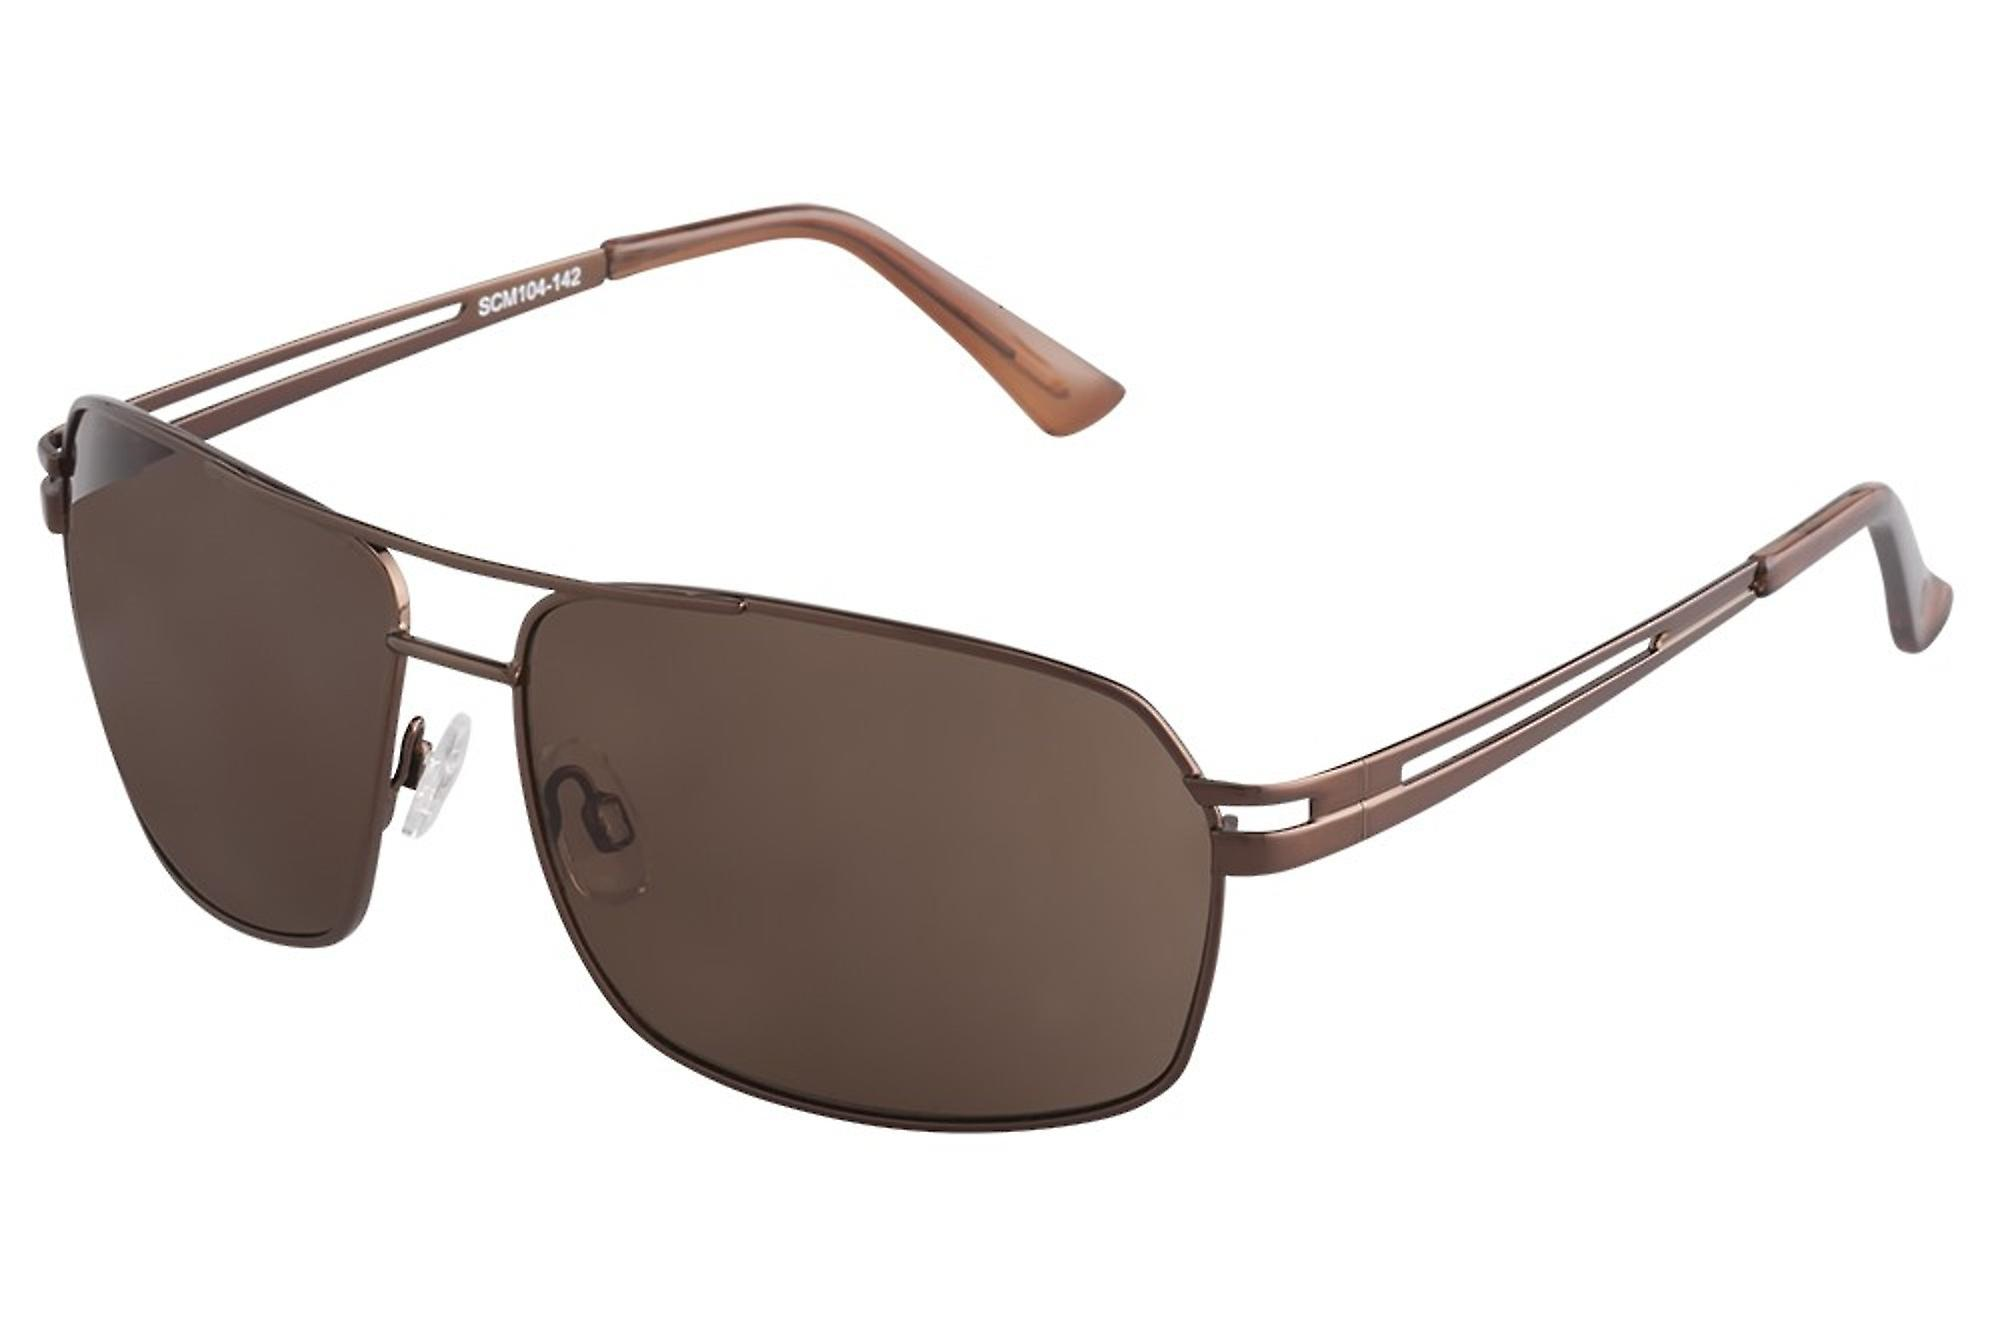 Classic sunglasses for men by Carlo Monti with 100% UV protection | sturdy metal frame, high quality sunglasses case, microfiber glasses pouch and 2 year warranty | SCM104-142 Napoli